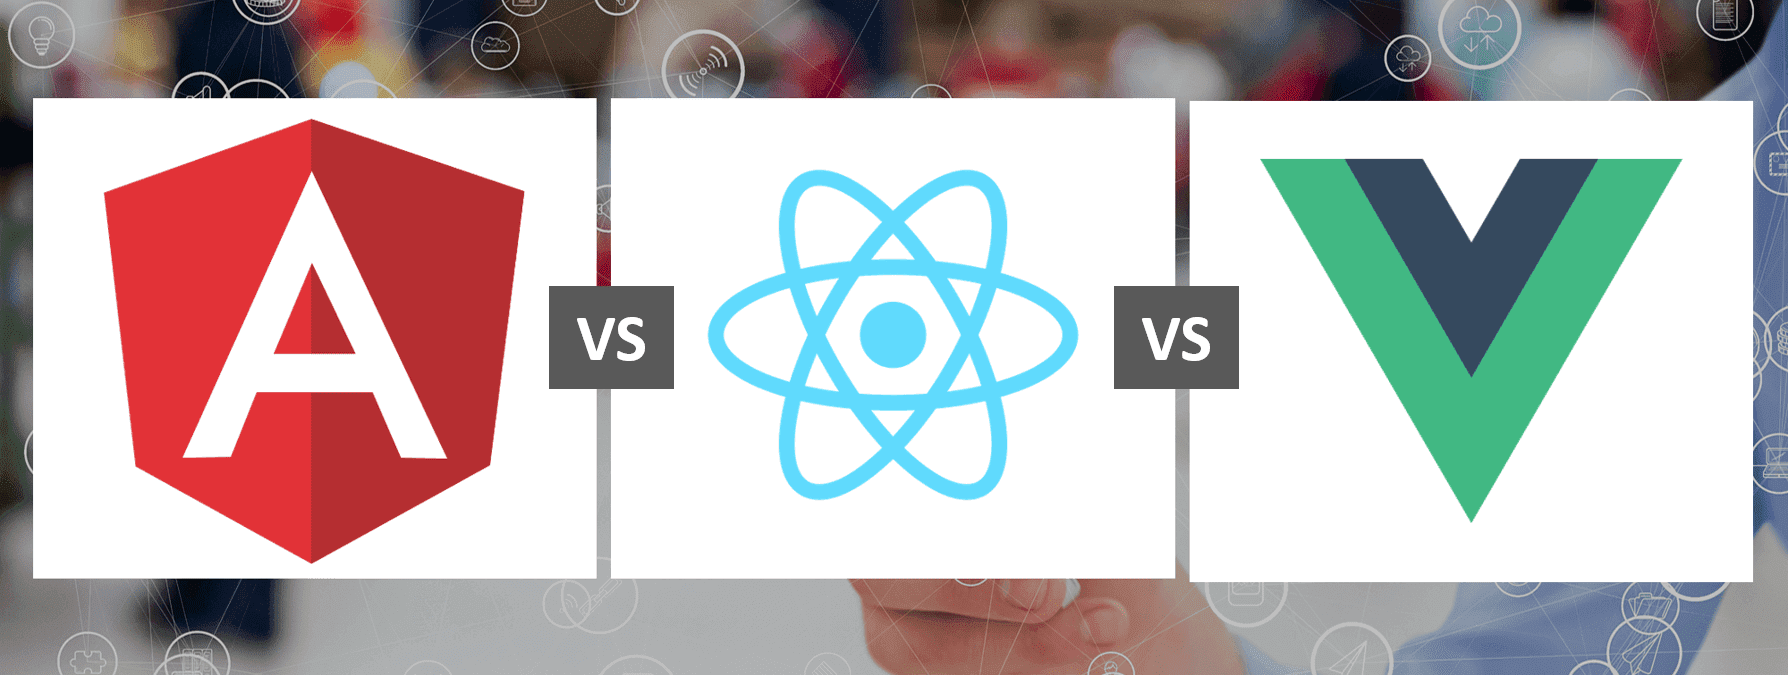 Comparison Of ReactJs, AngularJs, and VueJs